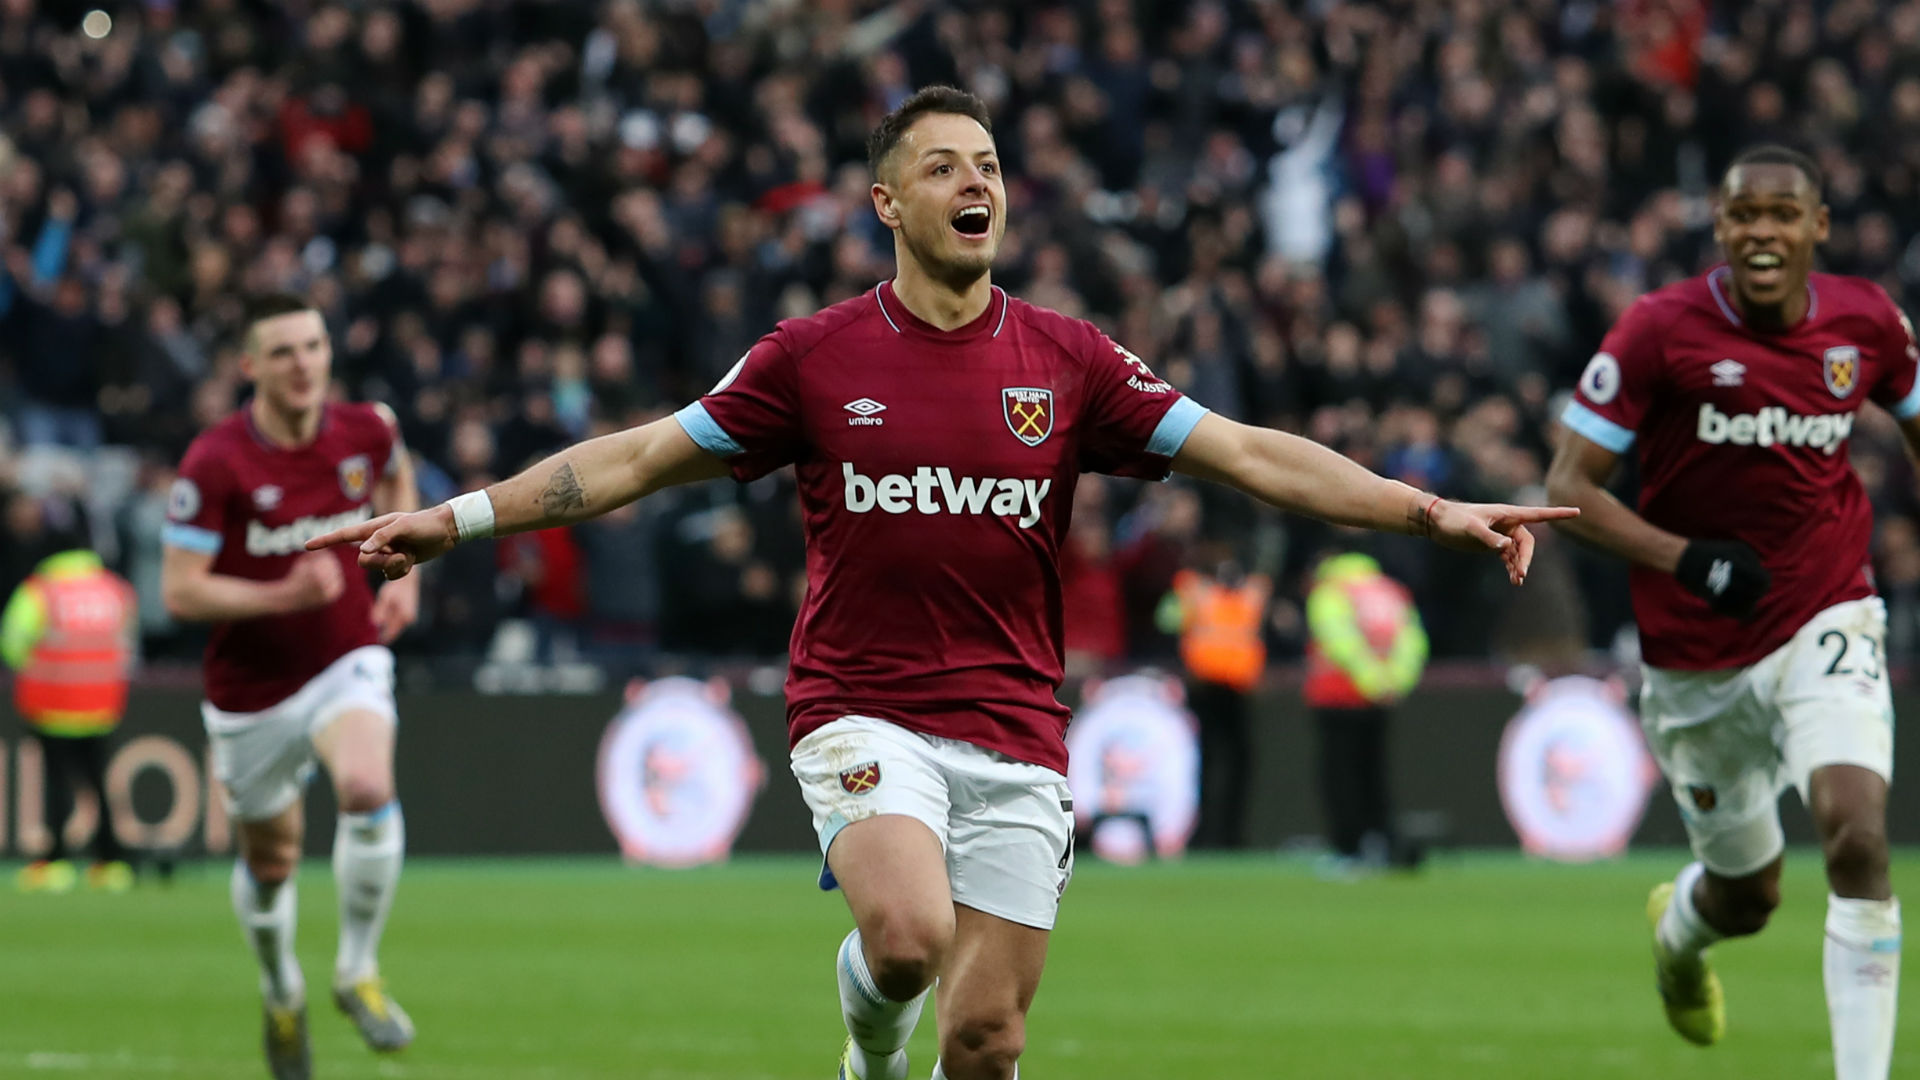 Dramatic Comeback Against Huddersfield Helps West Ham Accomplish Rare Premier League Feat